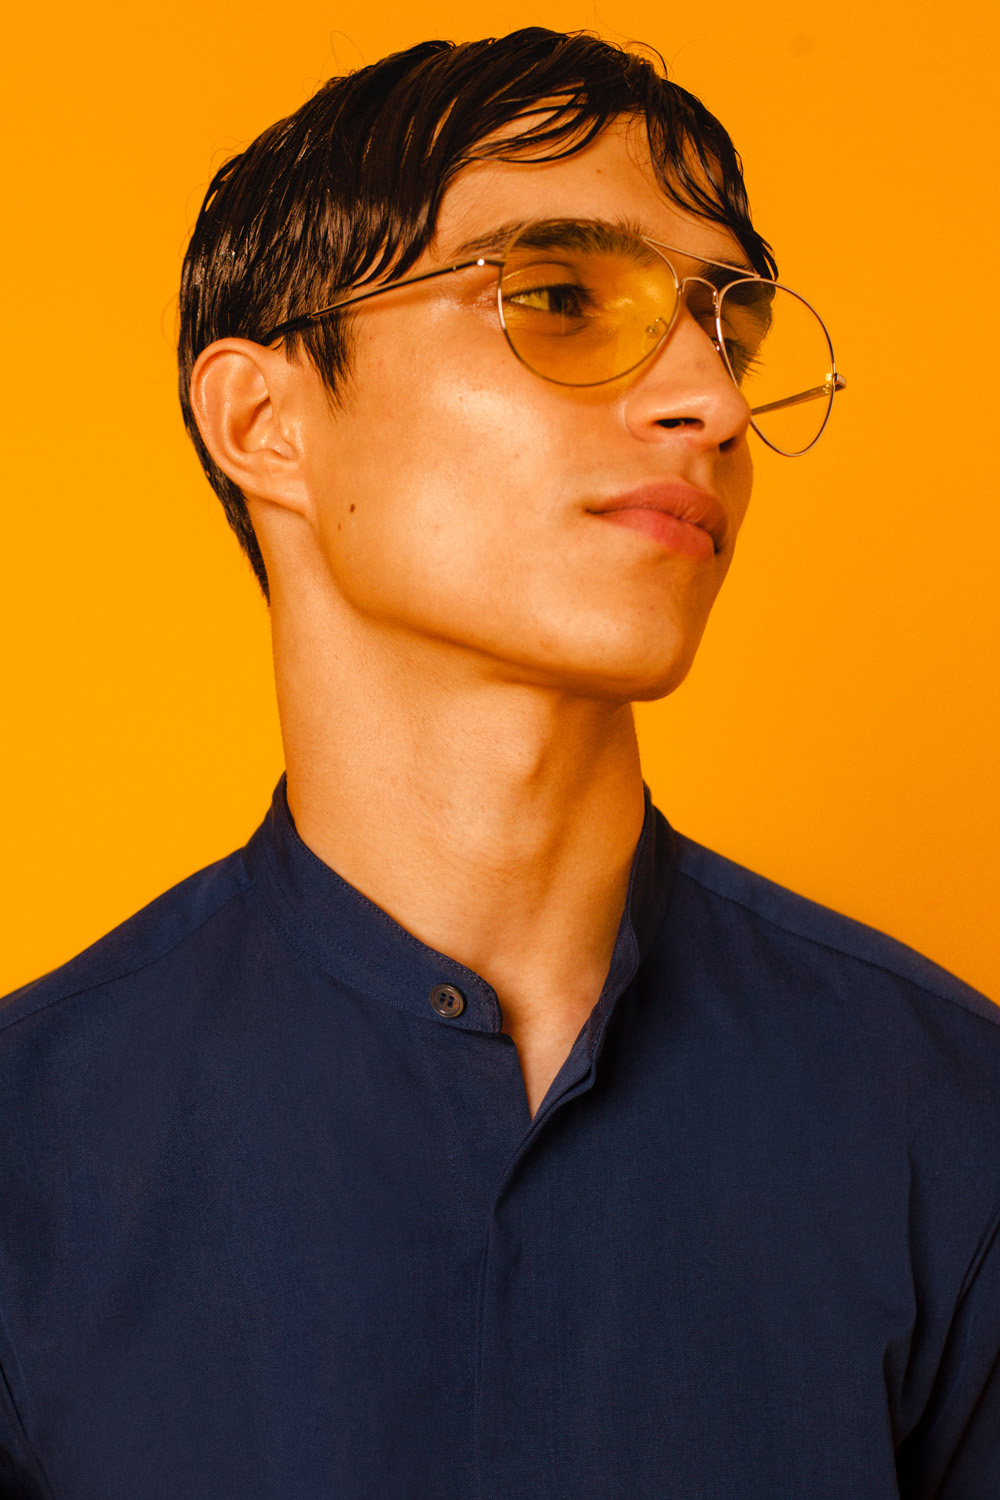 fatimayarie-advanilondon-menswear-blue-mensshirt-glasses-img_1959